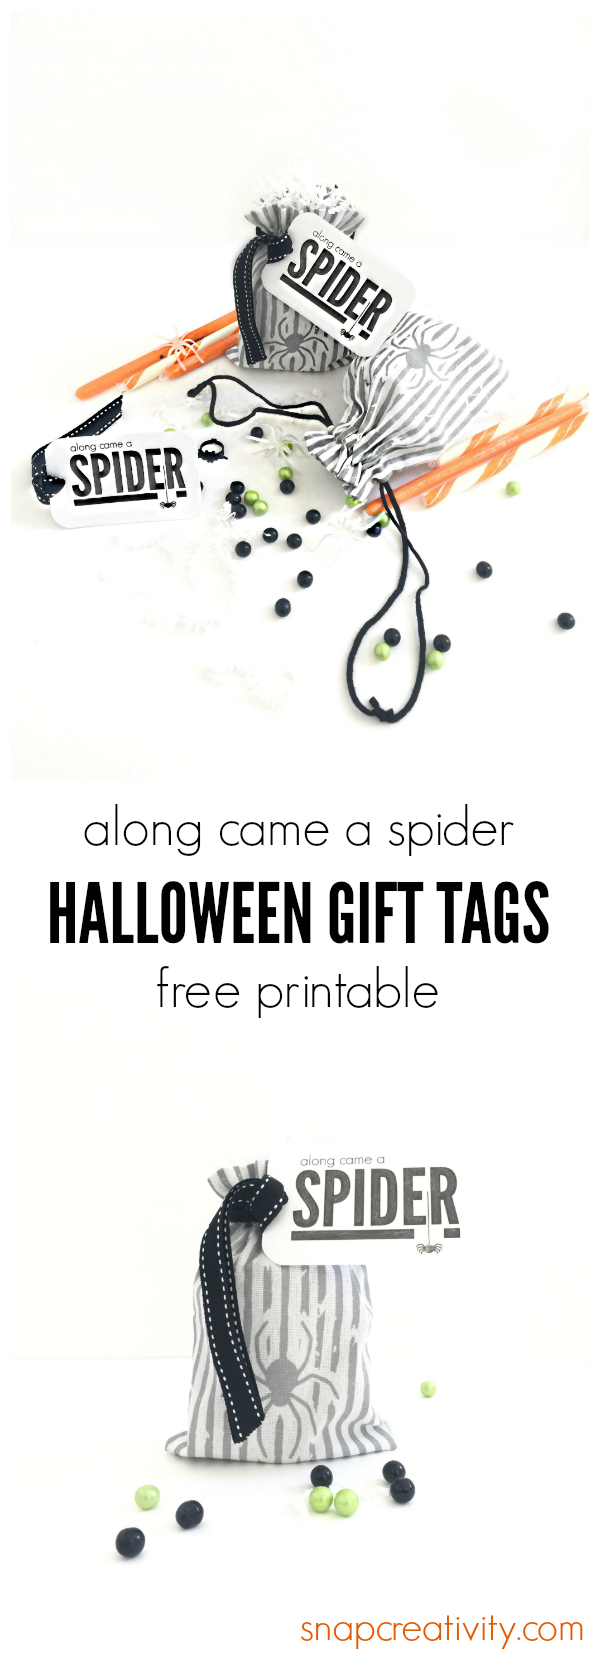 along-came-a-spider-pinterest